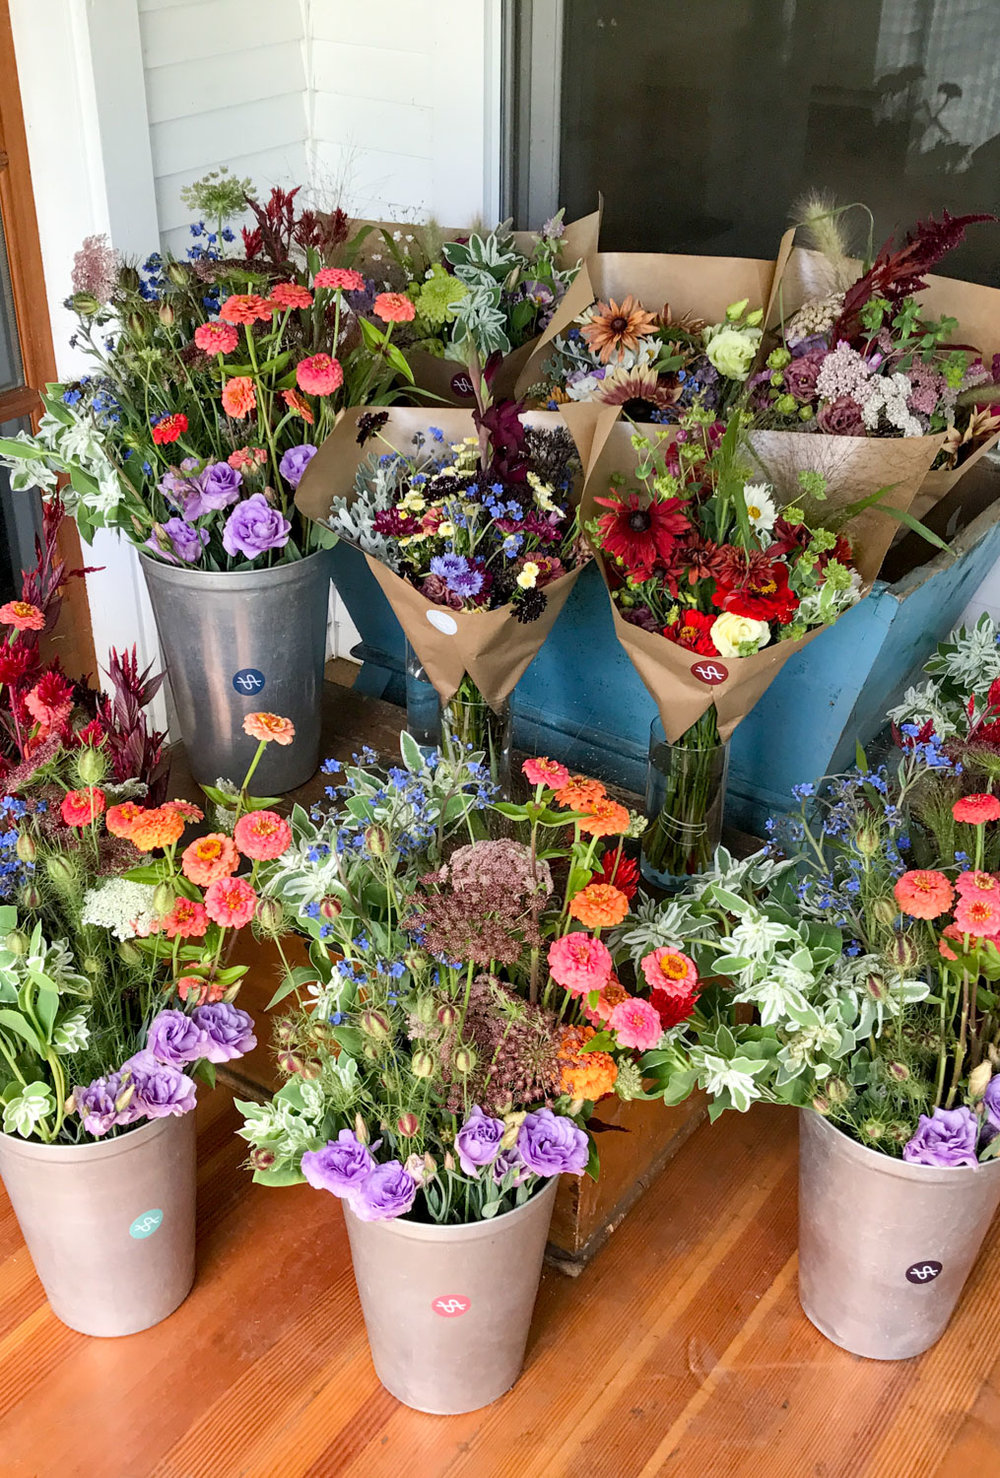 - For those interested in sumptuously extravagant weekly florals. By investing in us and our farm at the beginning of the season you will receive 14 weeks of painfully luscious flowers and experience the seasonal shift from spring beauties to summer heartthrobs. Visit our CSA page for more details.